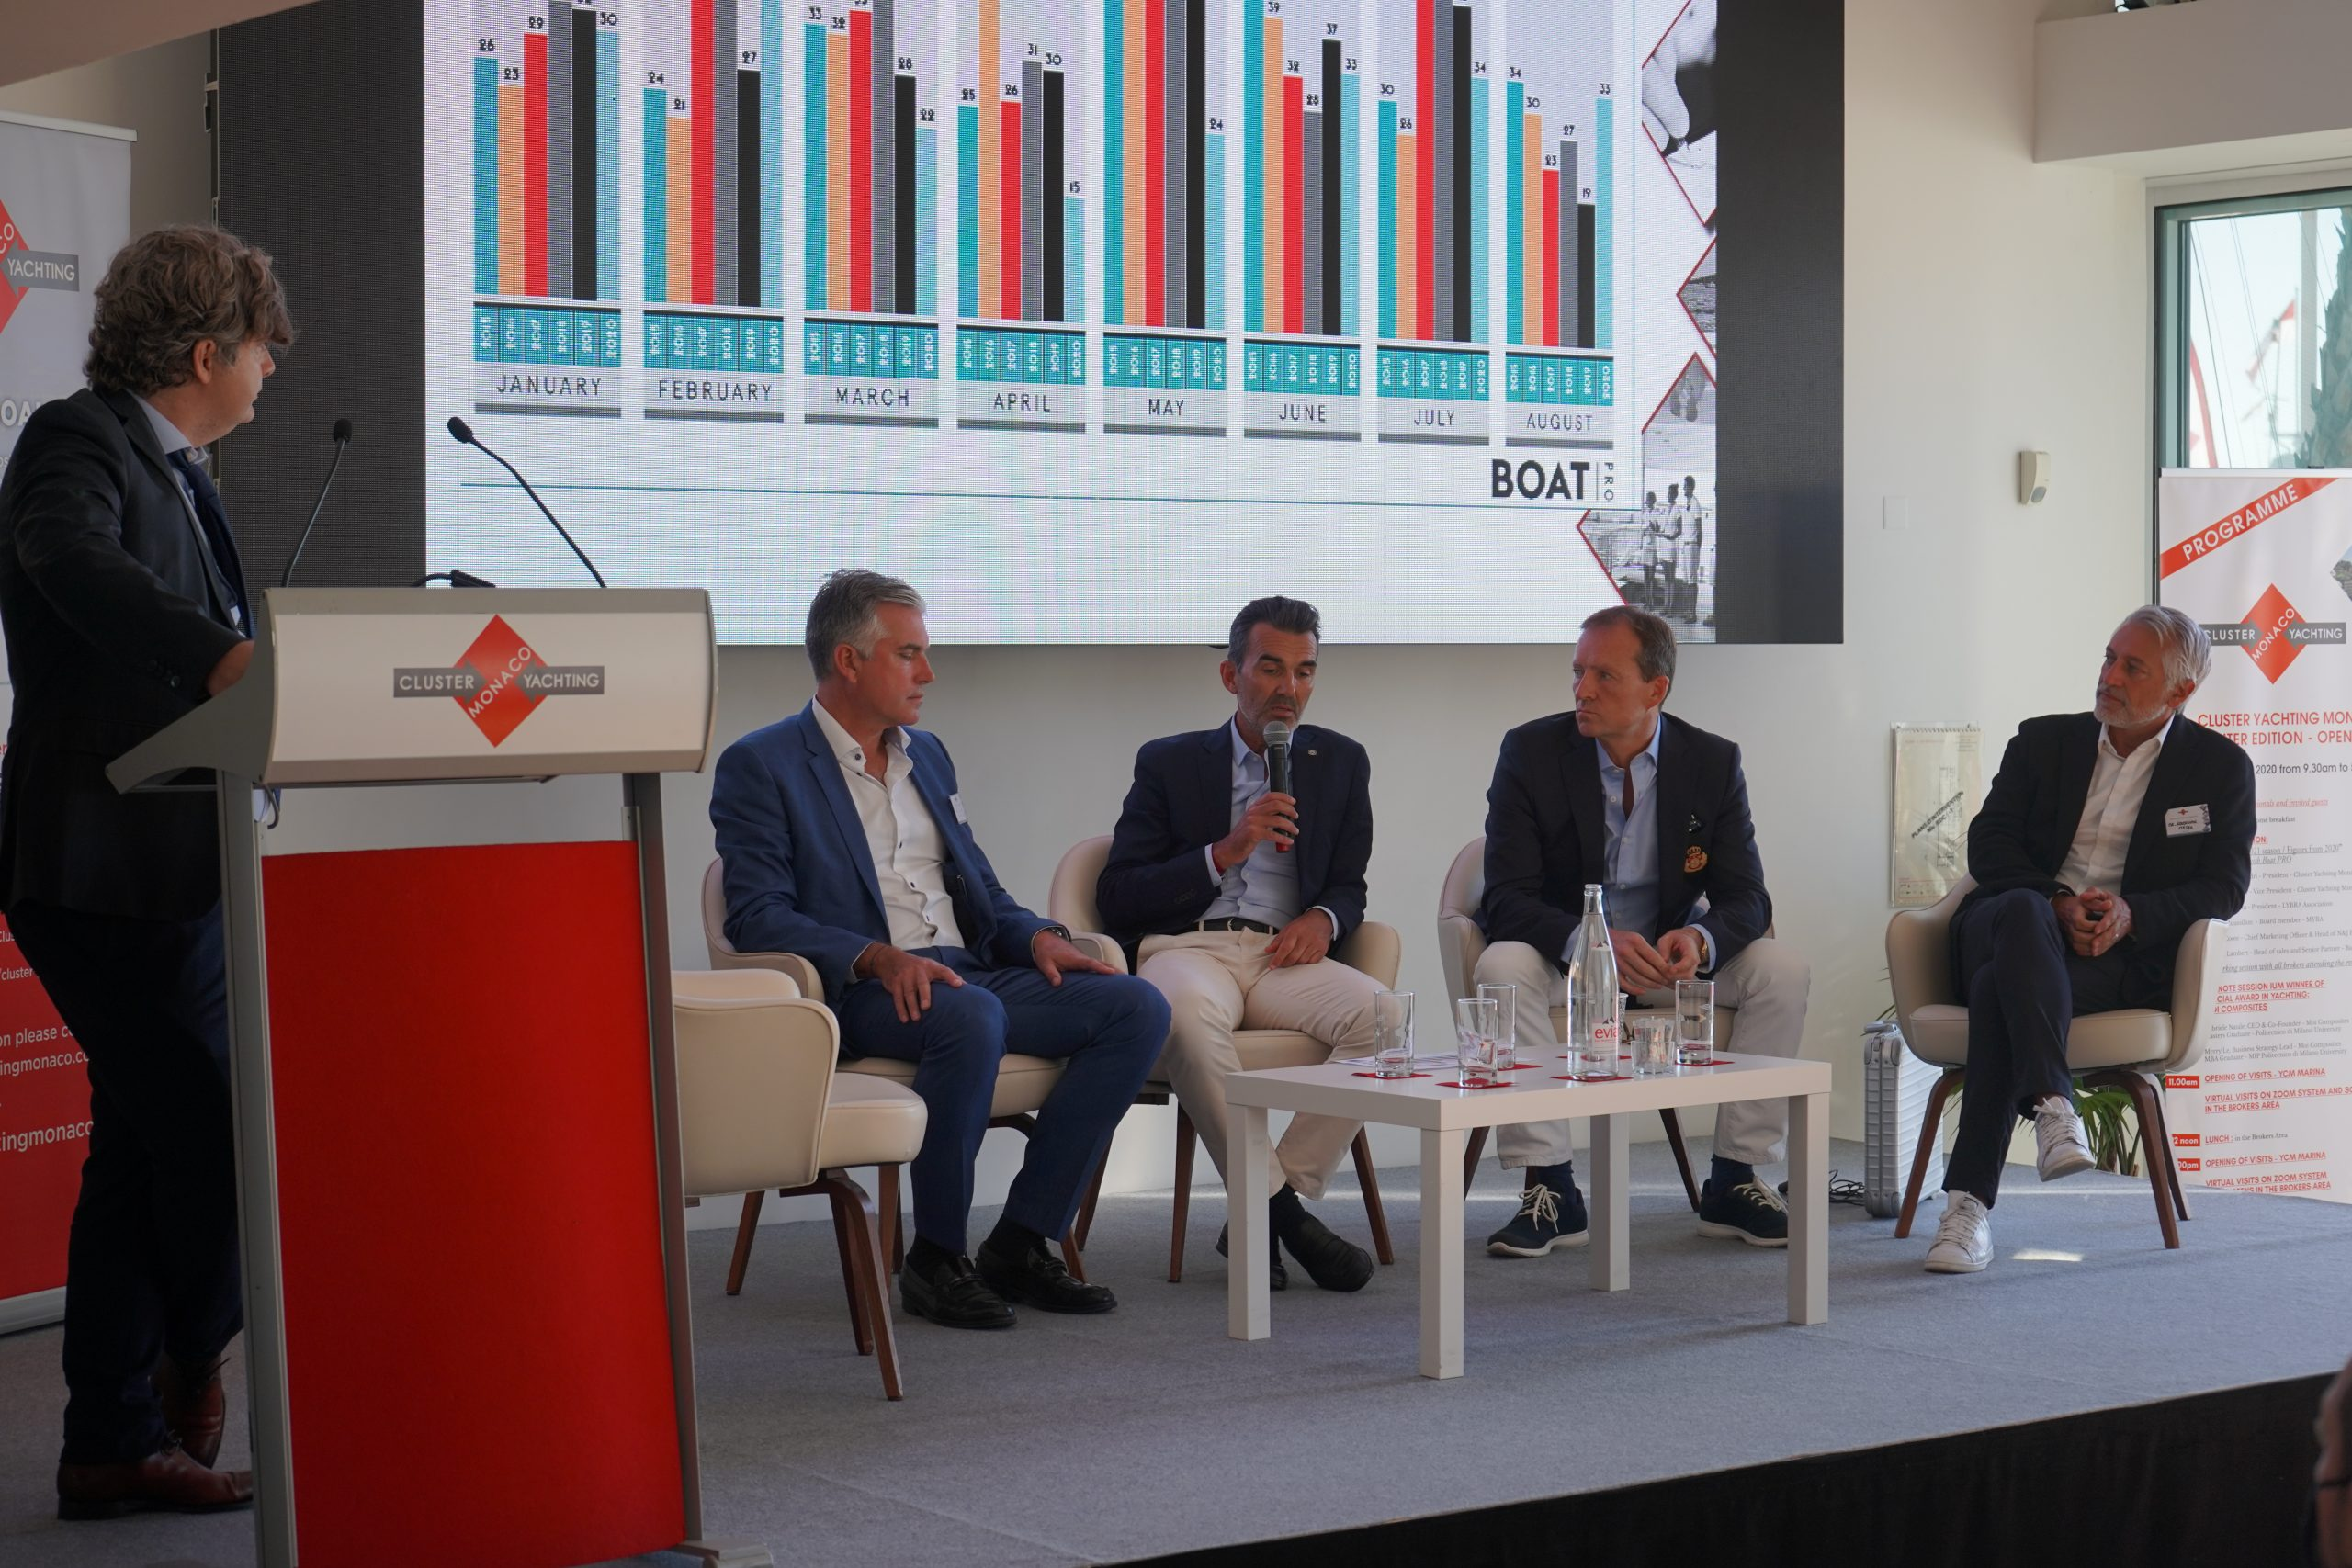 Cluster Yachting Monaco - Open Day, Opening Session with speakers at the Monaco Yacht Club